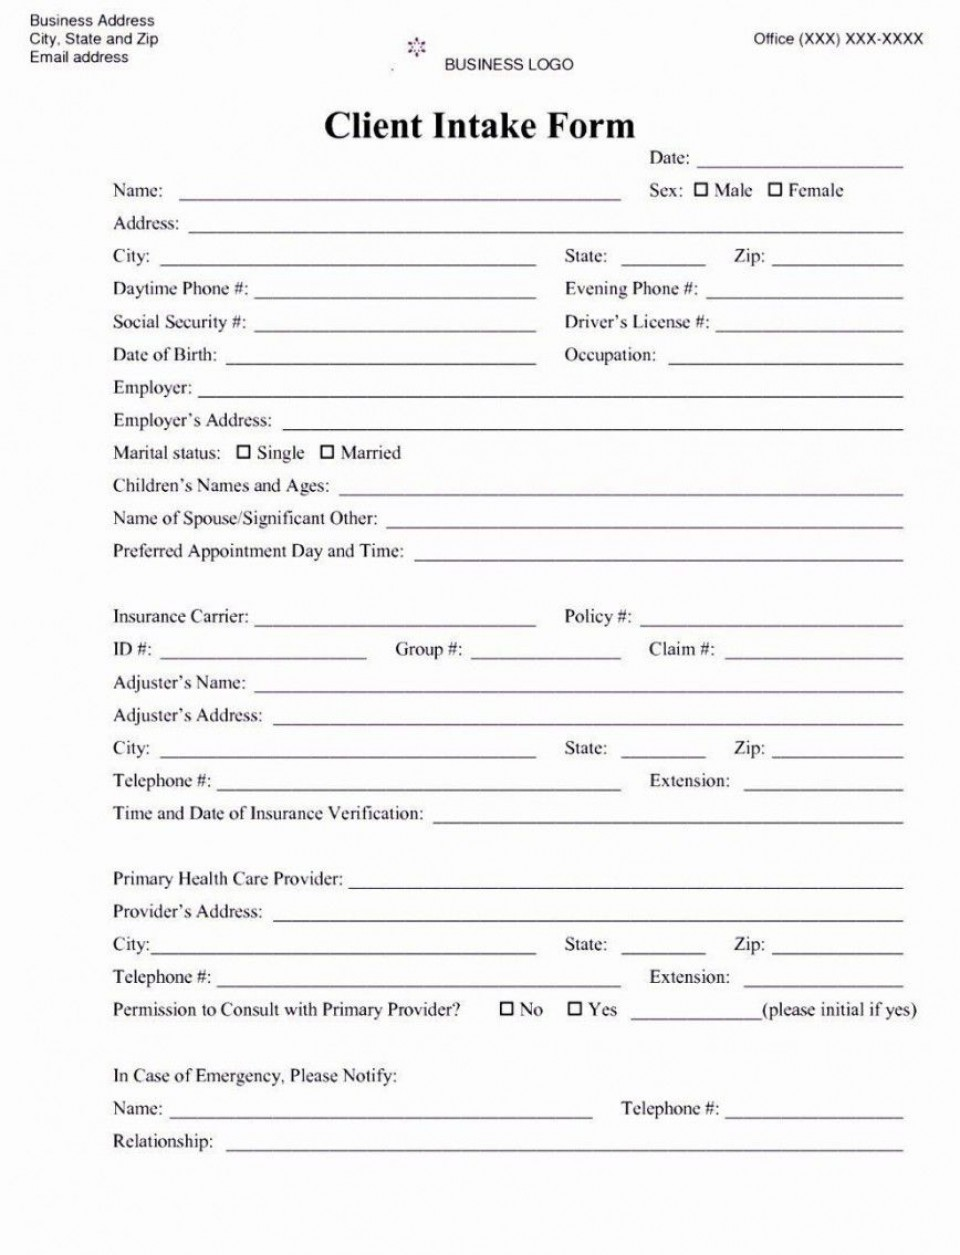 001 Awesome Mental Health Intake Form Template Sample  Counseling Assessment960